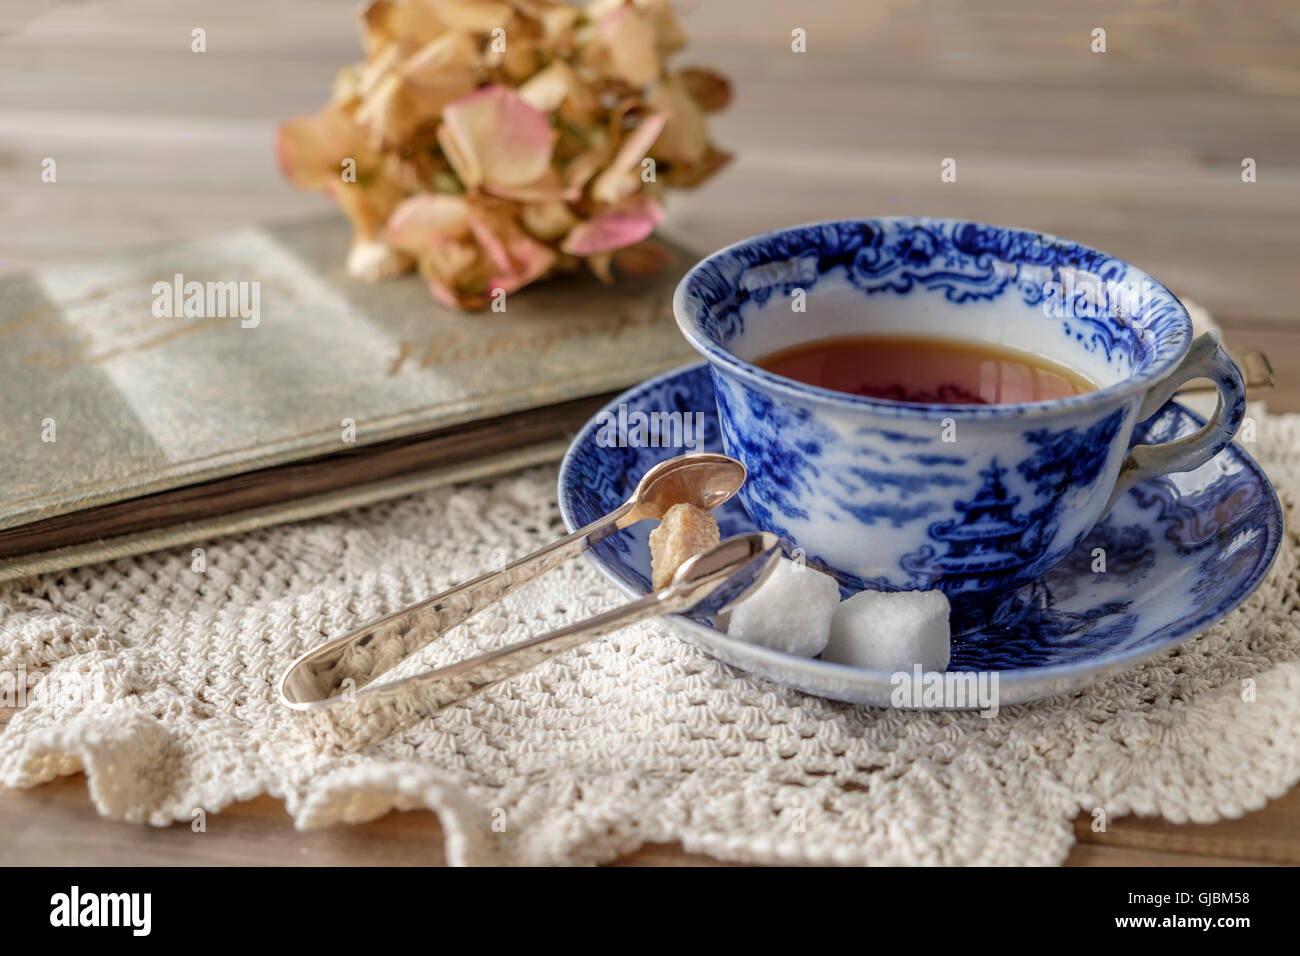 Nostalgic scene of tea in antique blue and white china cup and saucer with brown and white sugar cubes and tongs - Stock Image